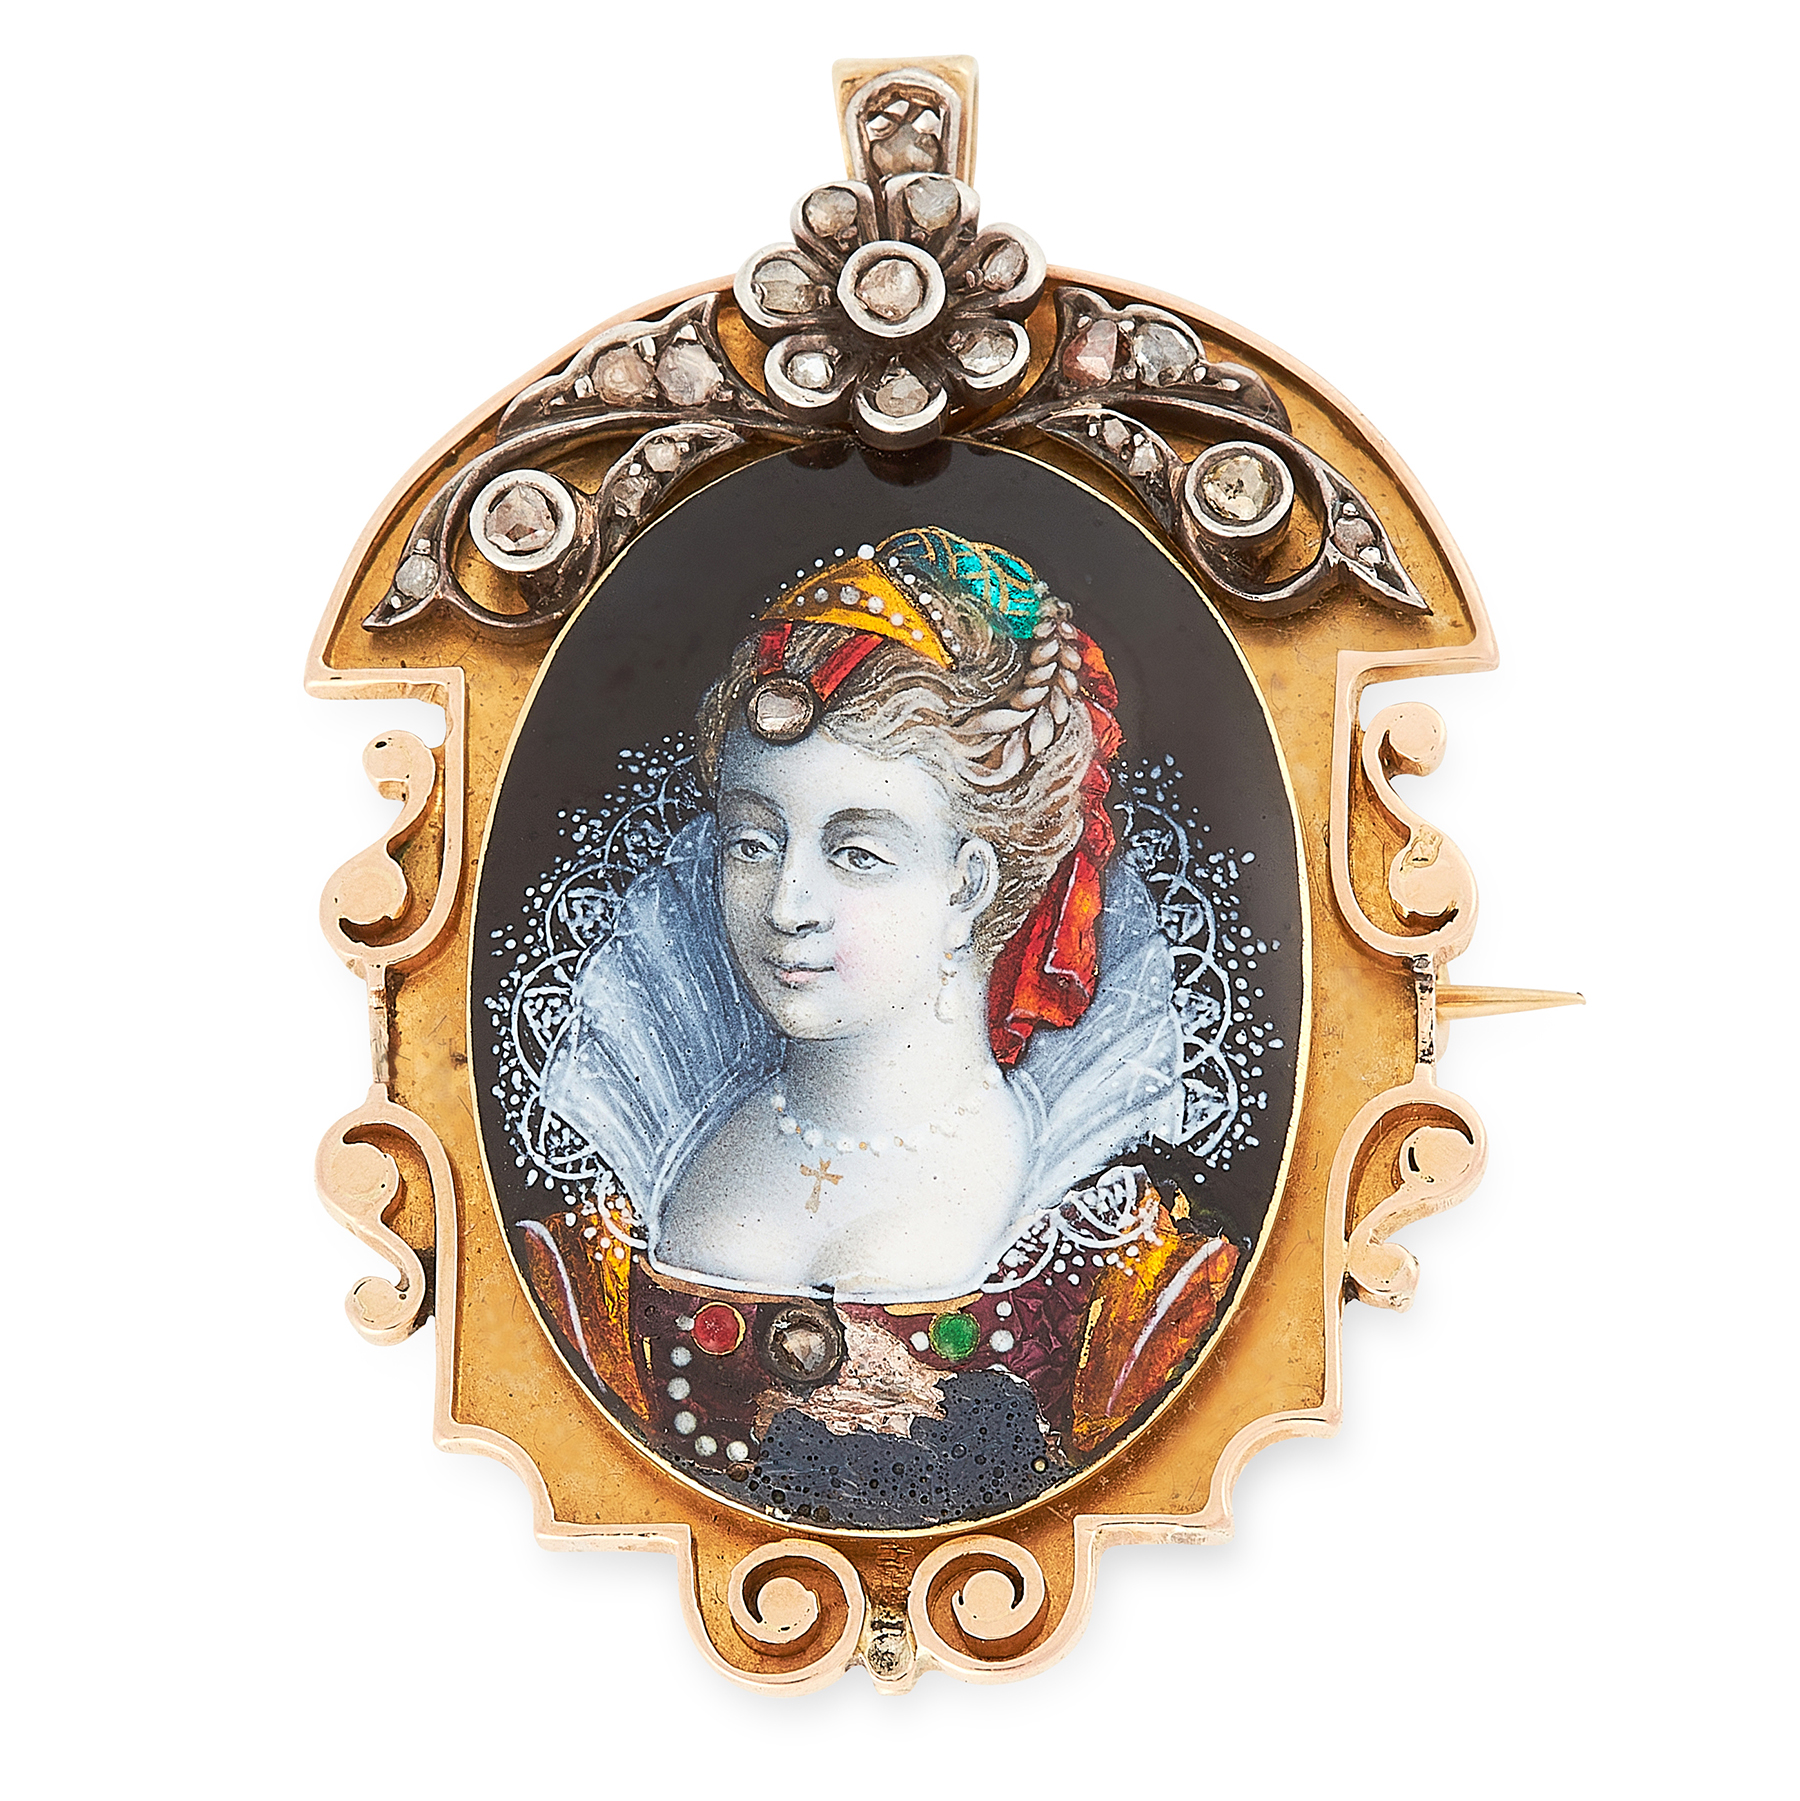 AN ANTIQUE ENAMEL AND DIAMOND PORTRAIT BROOCH / PENDANT in yellow gold, set with an oval enamel